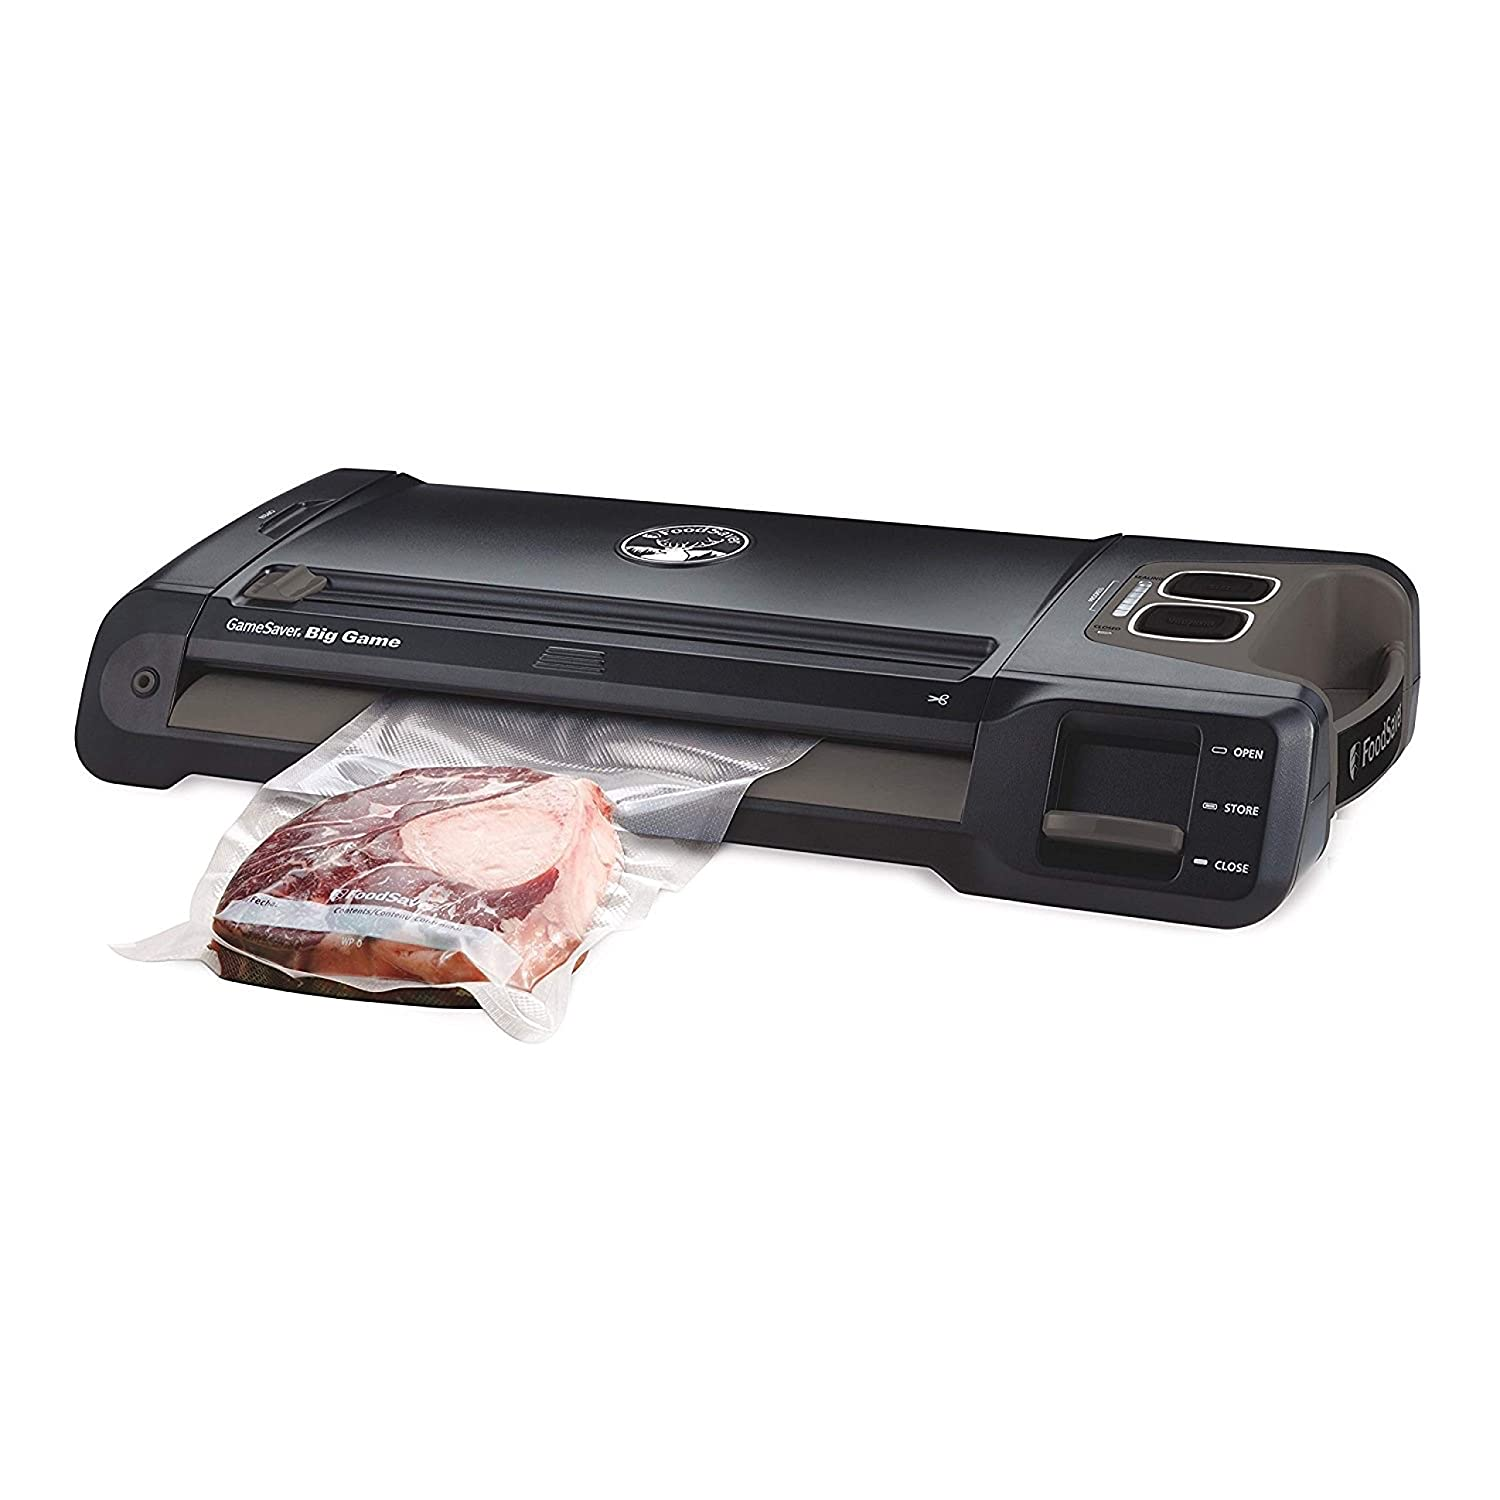 FoodSaver Vacuum Sealer GM710-000 GameSaver Big Game Sealing System, reg Black